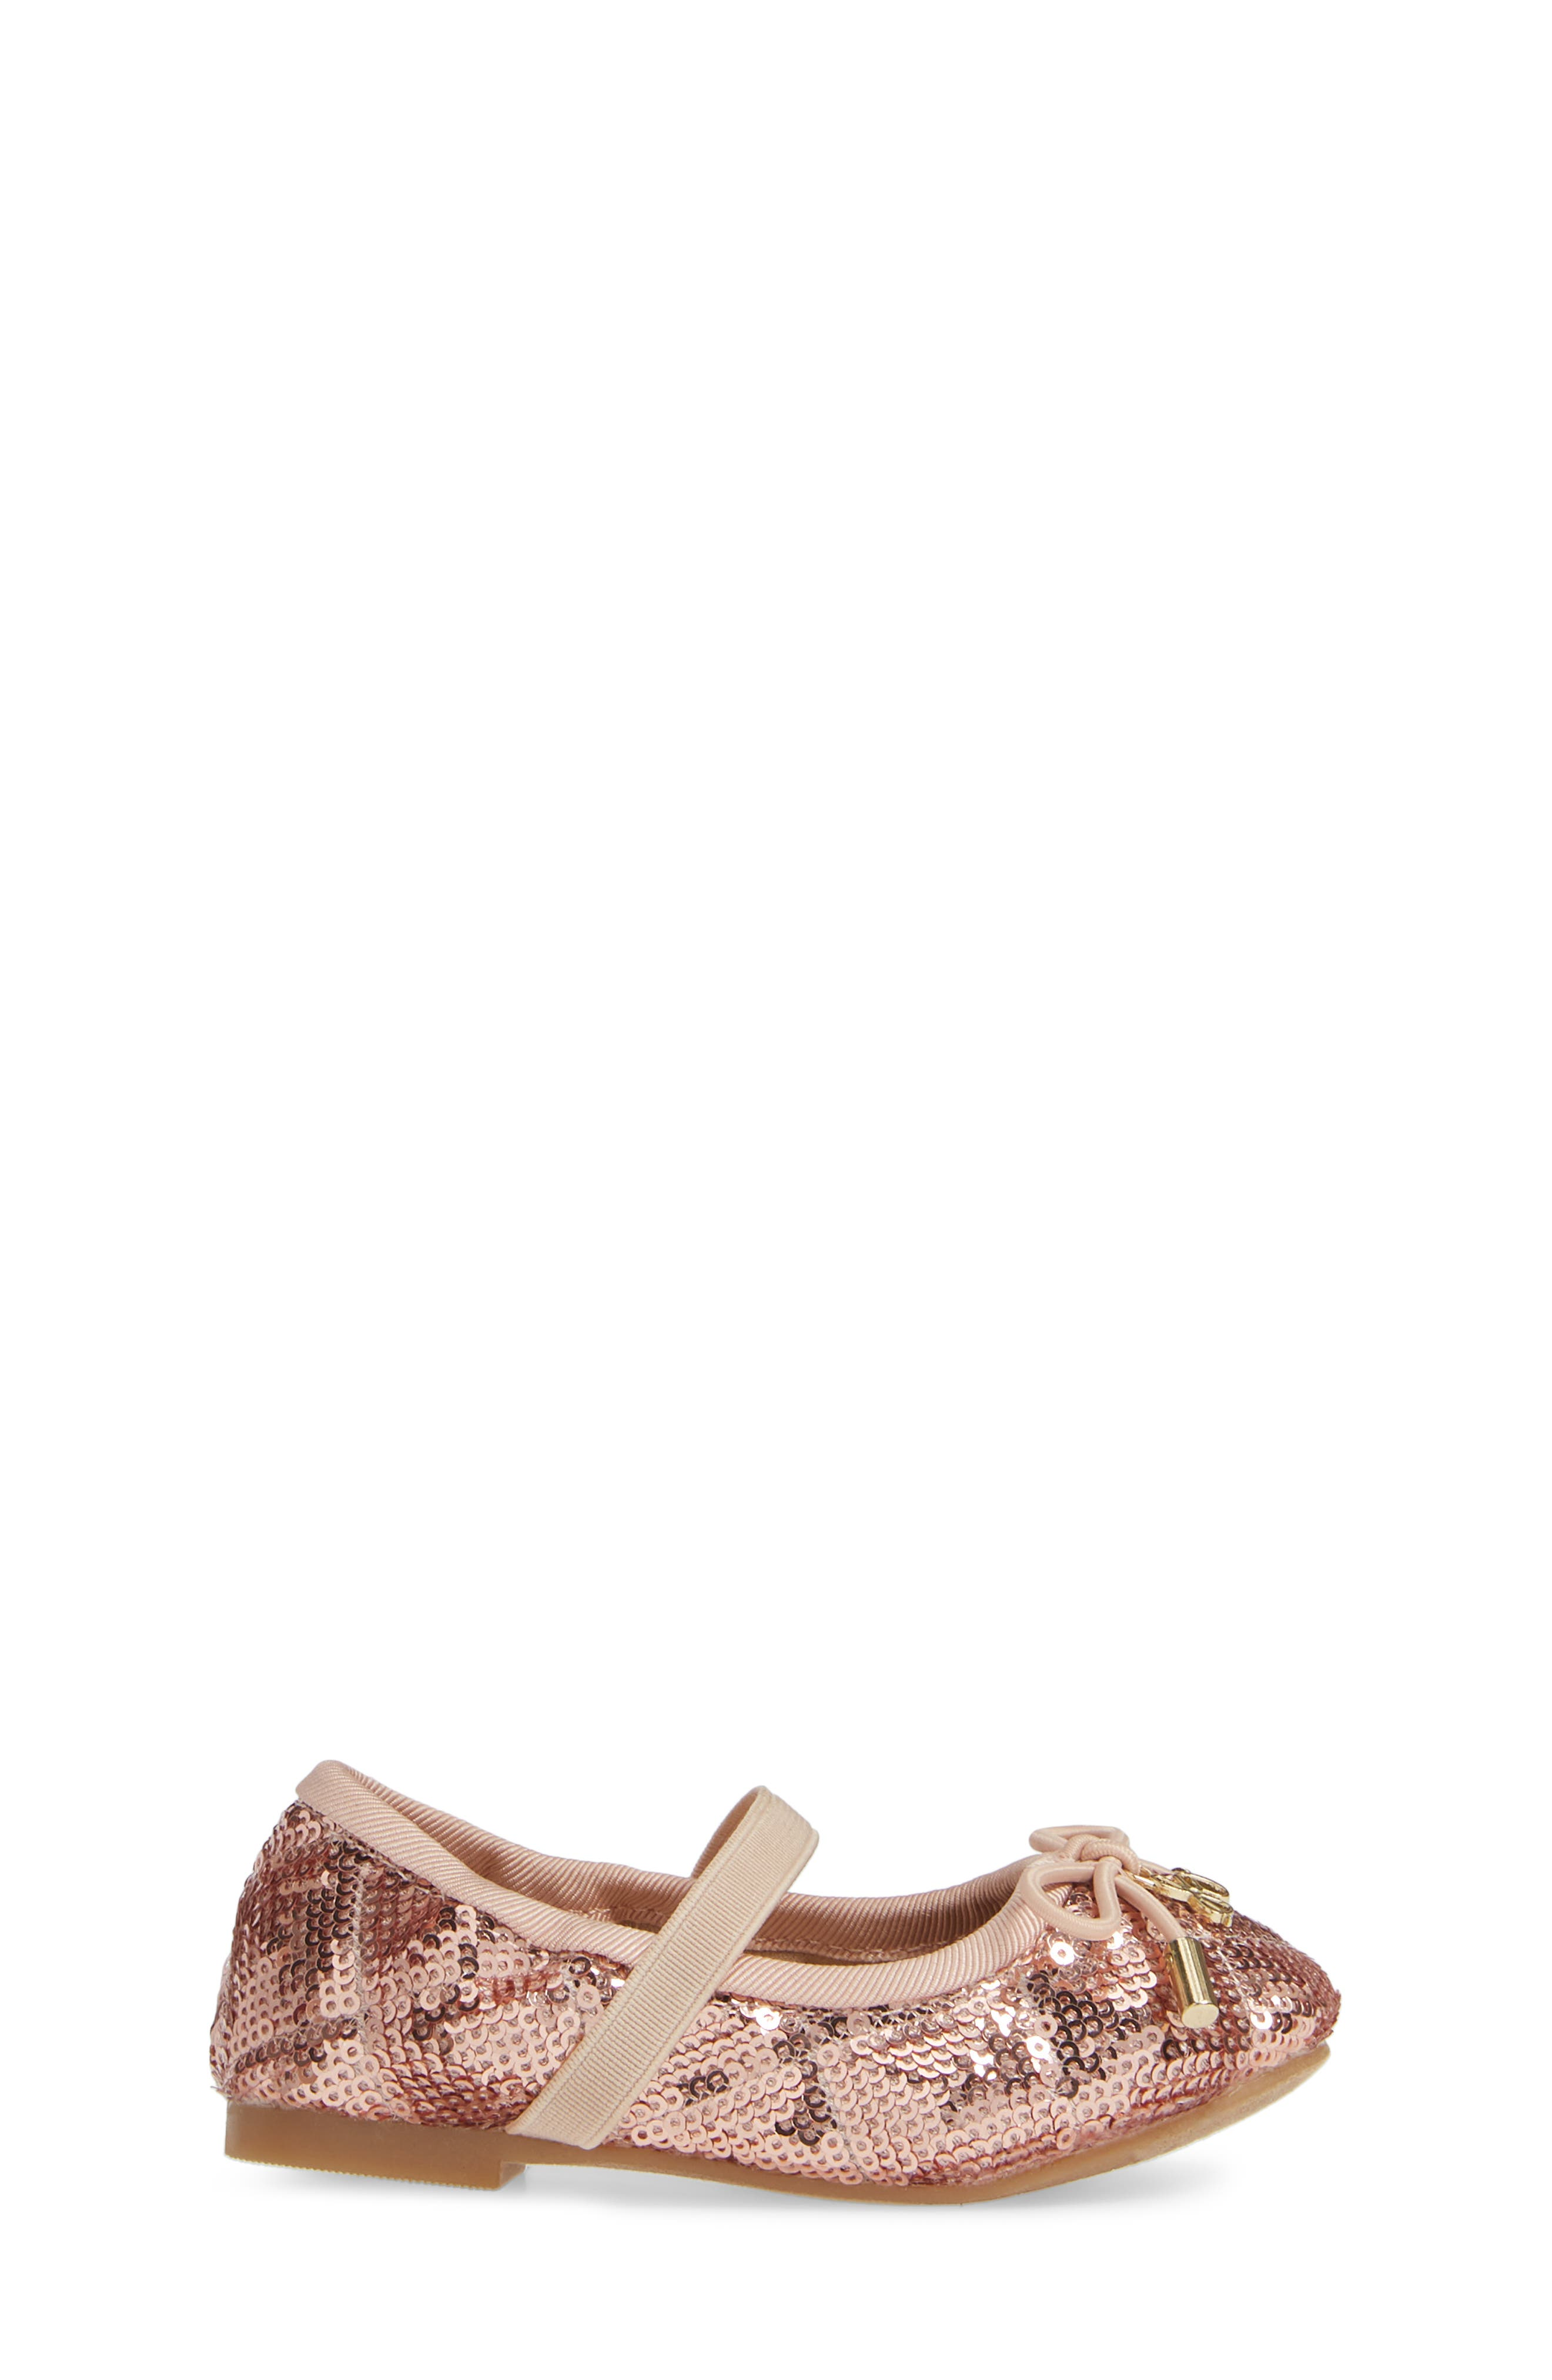 'Felicia' Mary Jane Ballet Flat,                             Alternate thumbnail 3, color,                             ROSE GOLD